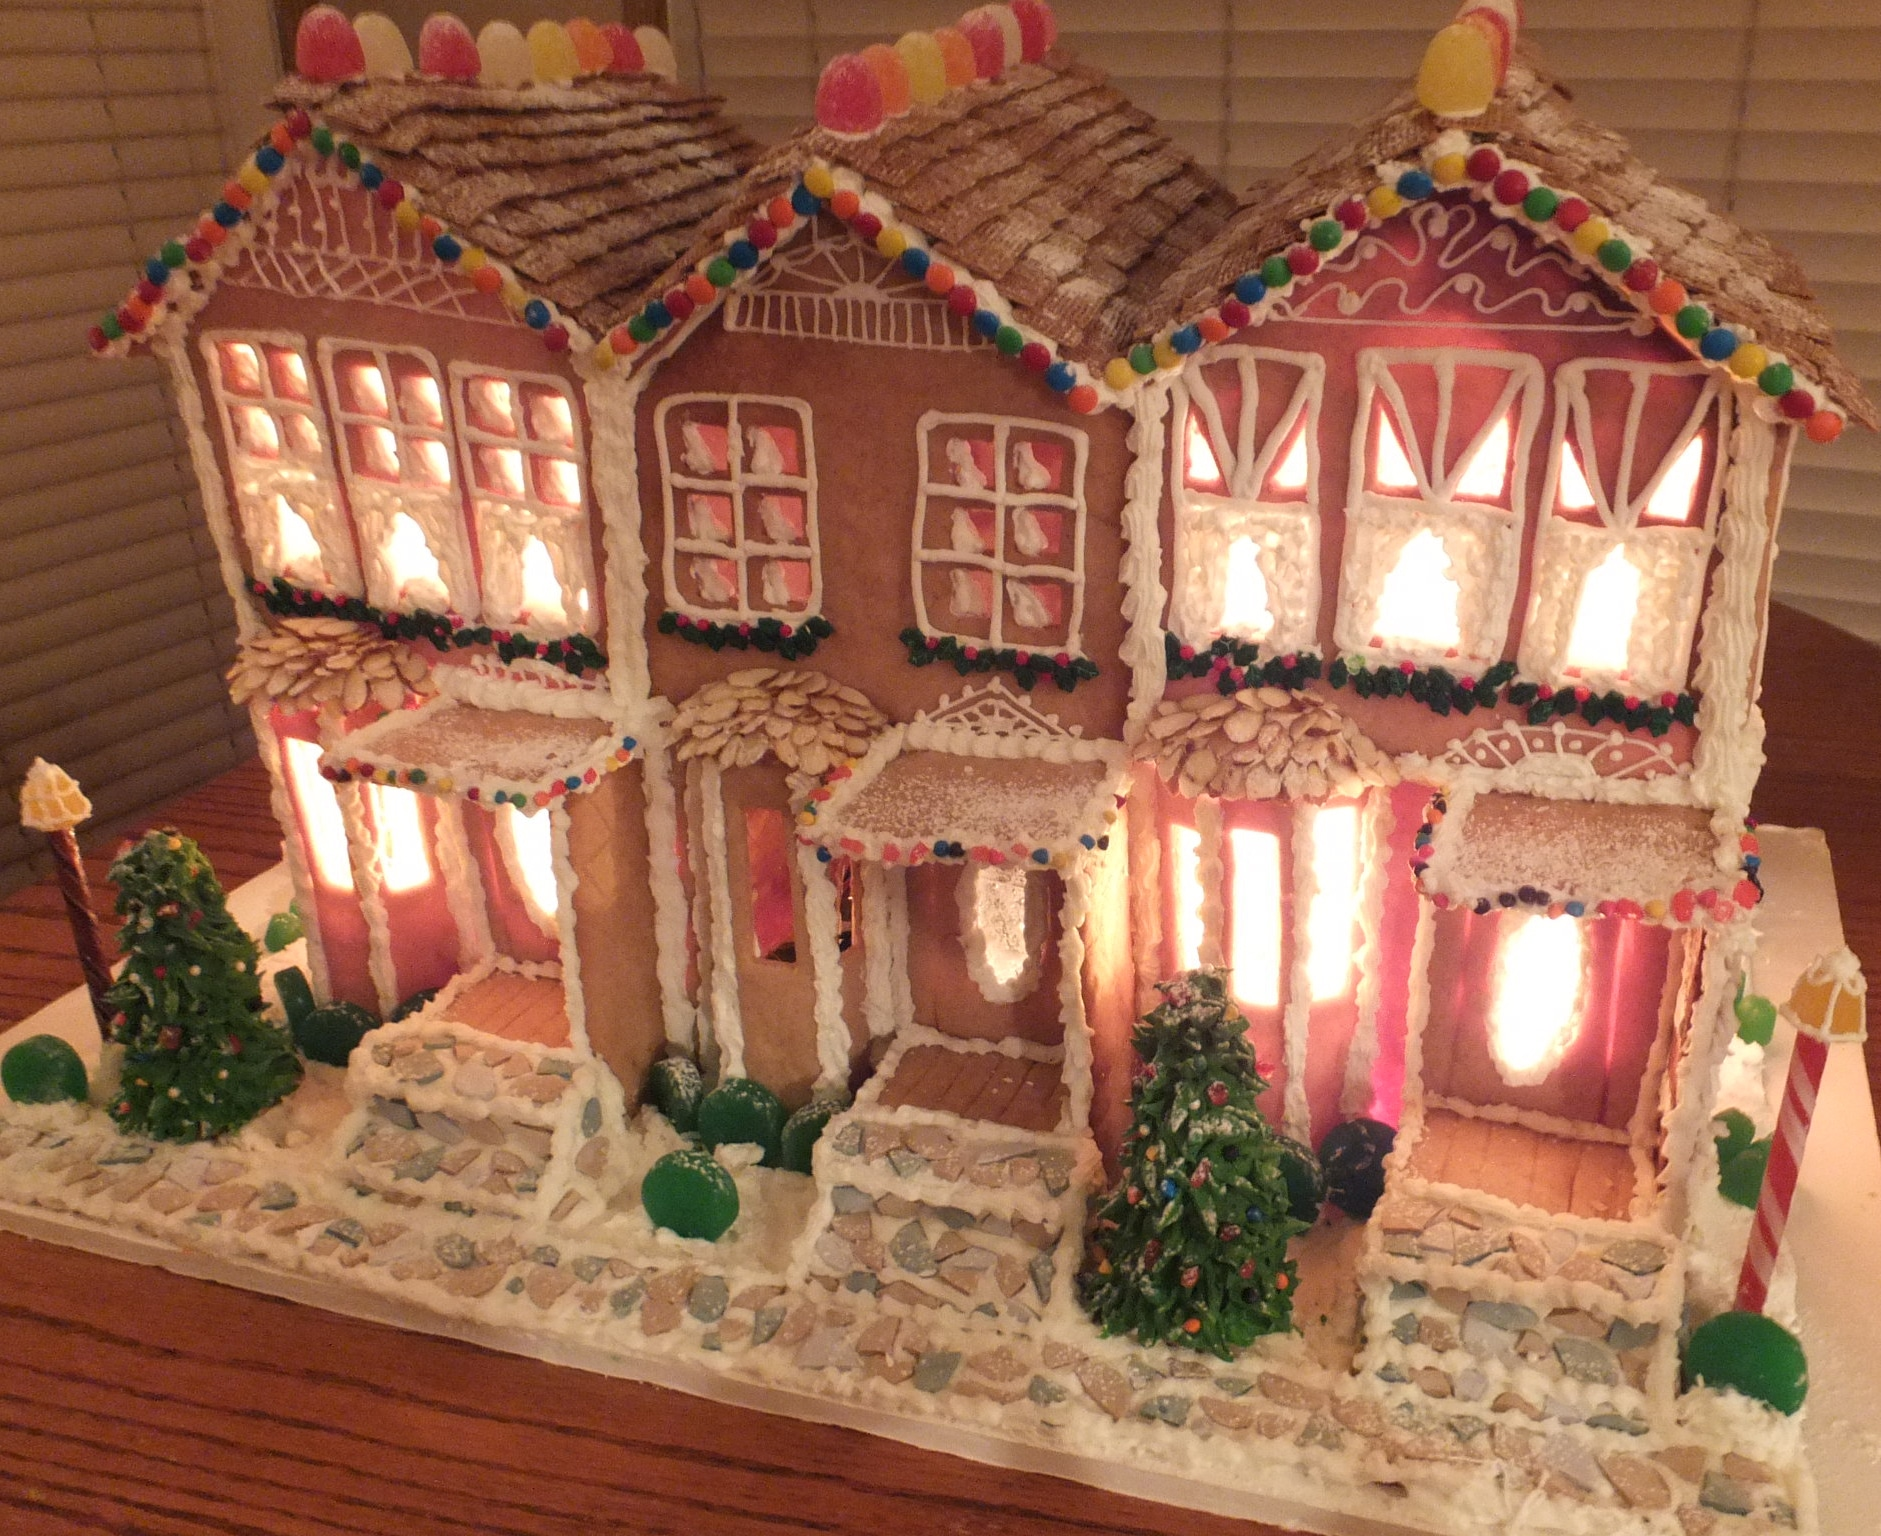 Gingerbread house5 - done